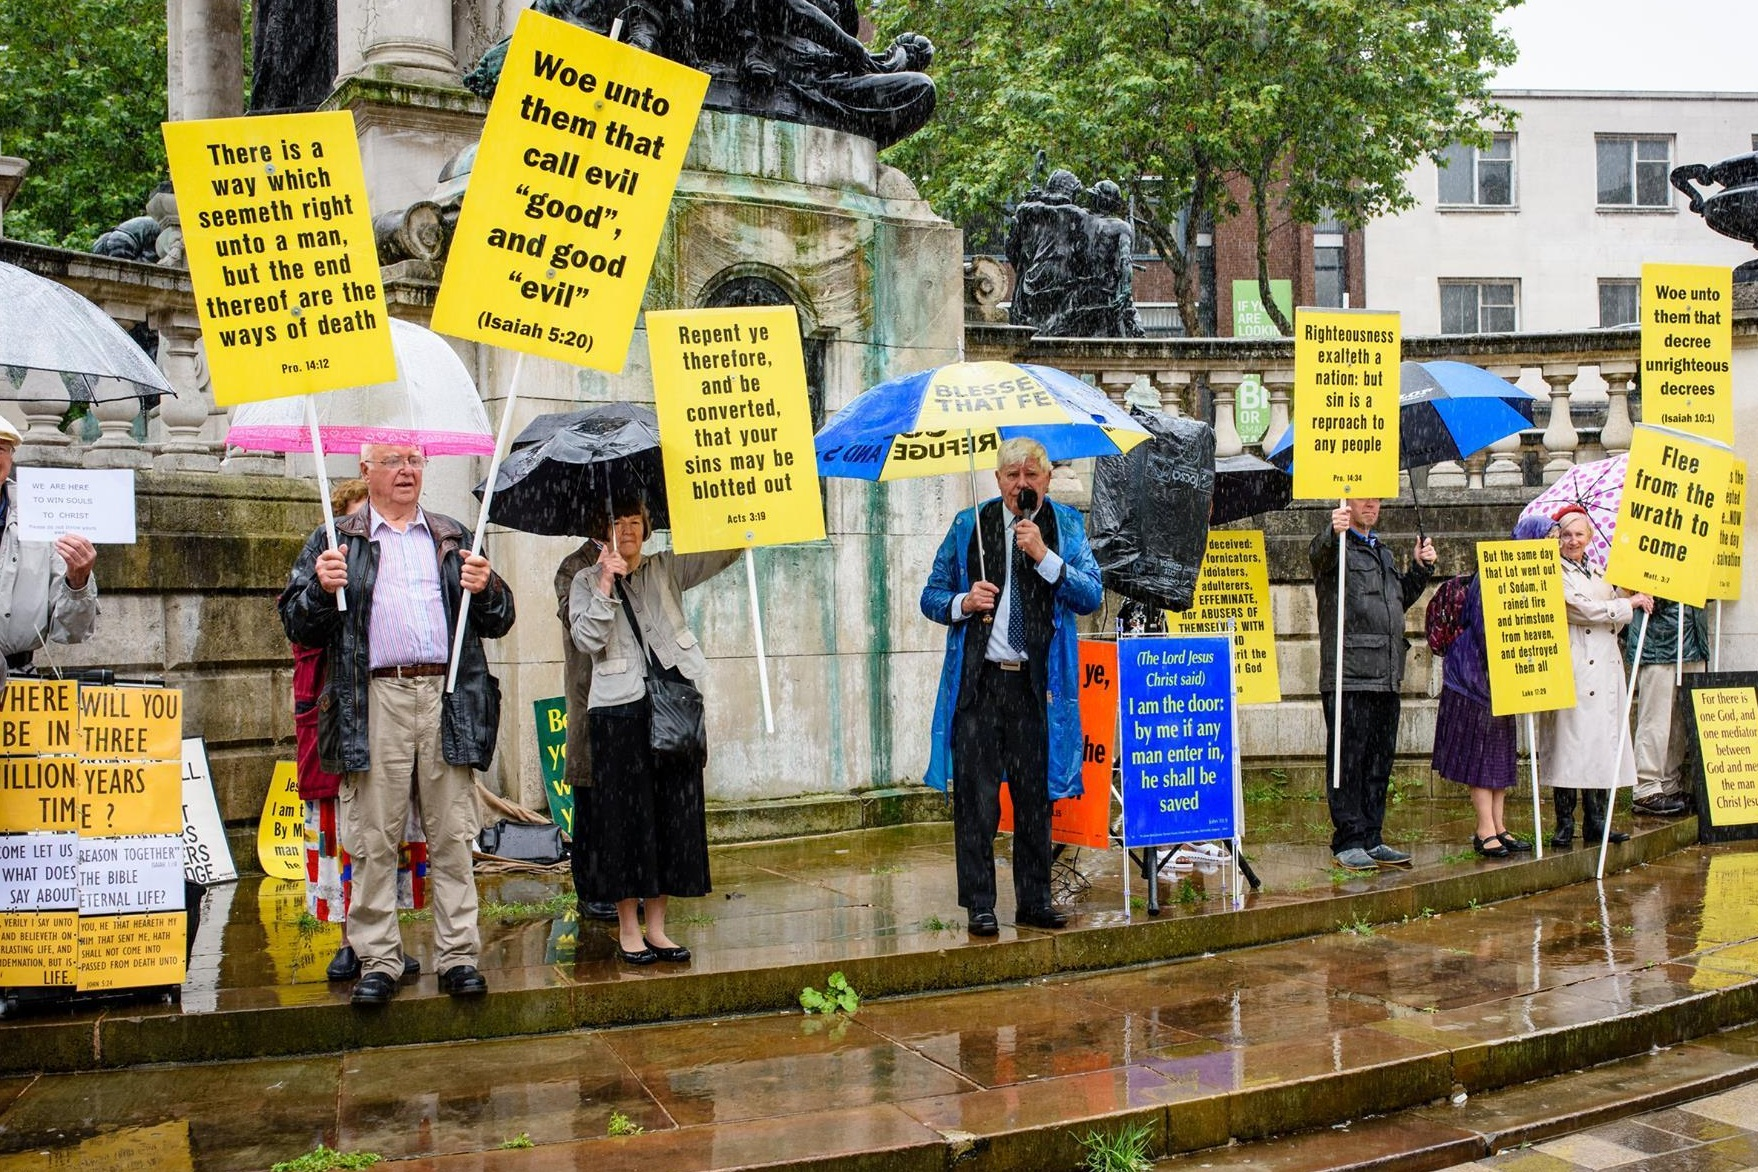 Christian Voice protesters at Pride. PHOTO Jonathan Jelfs